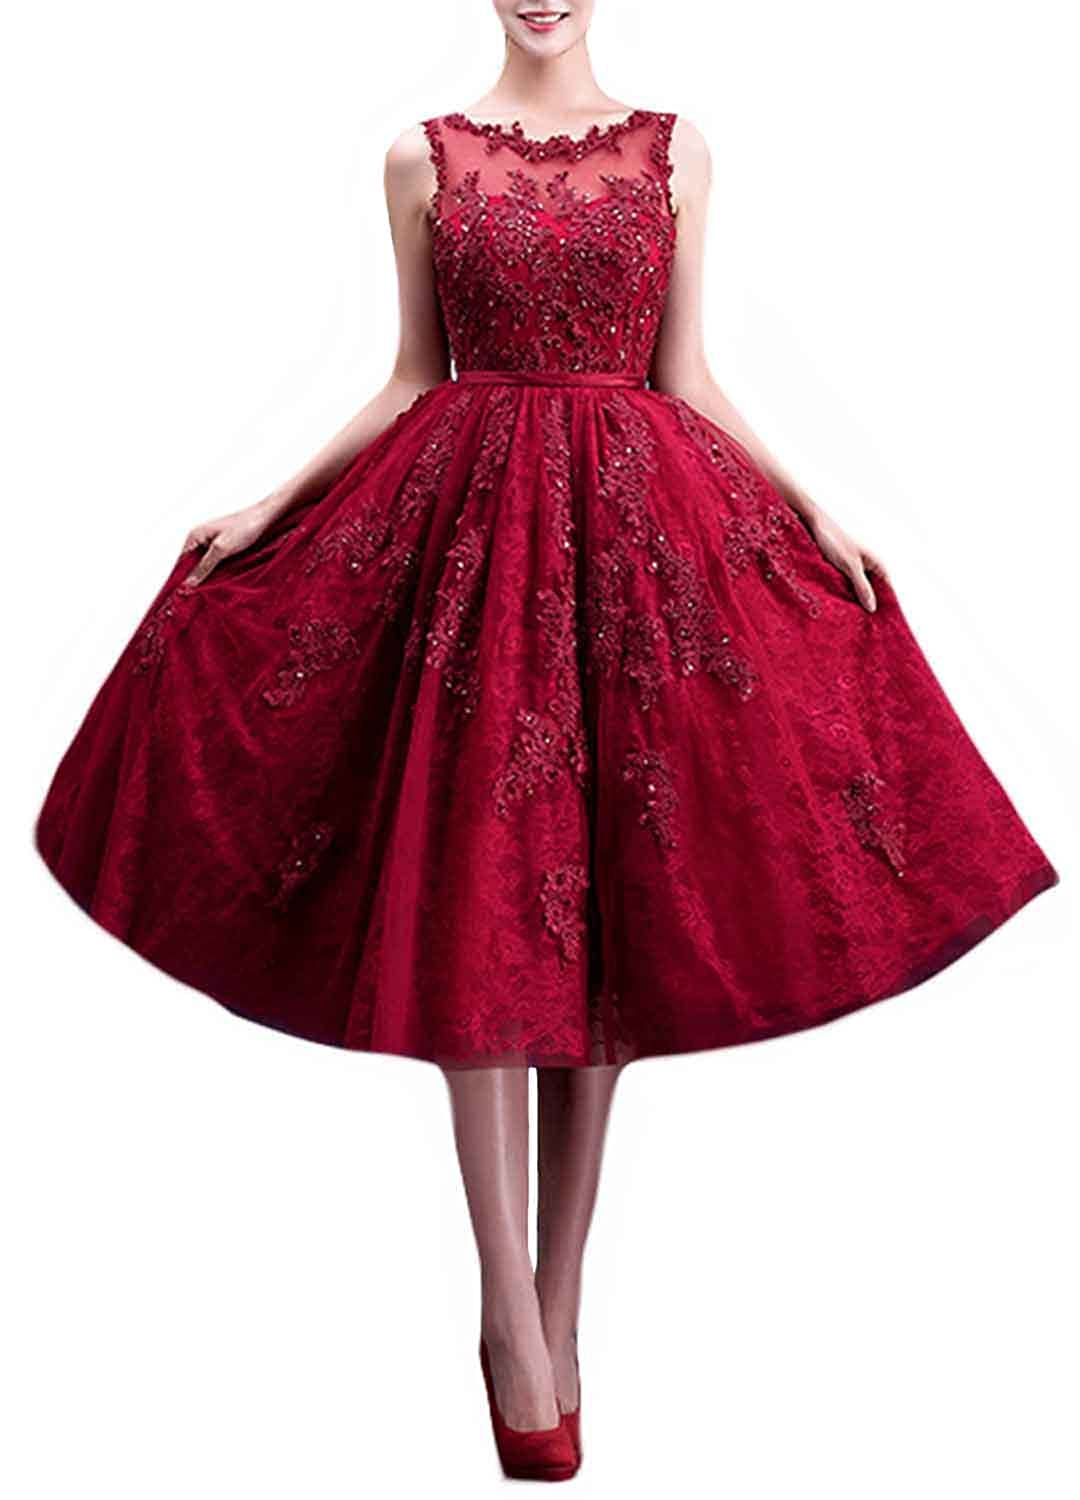 FANHAO Women Embroidery Lace Zipper Tea-length Ball Gown Bridesmaid Dress Burgundy XS FH-YFLF-XL36-BGXS